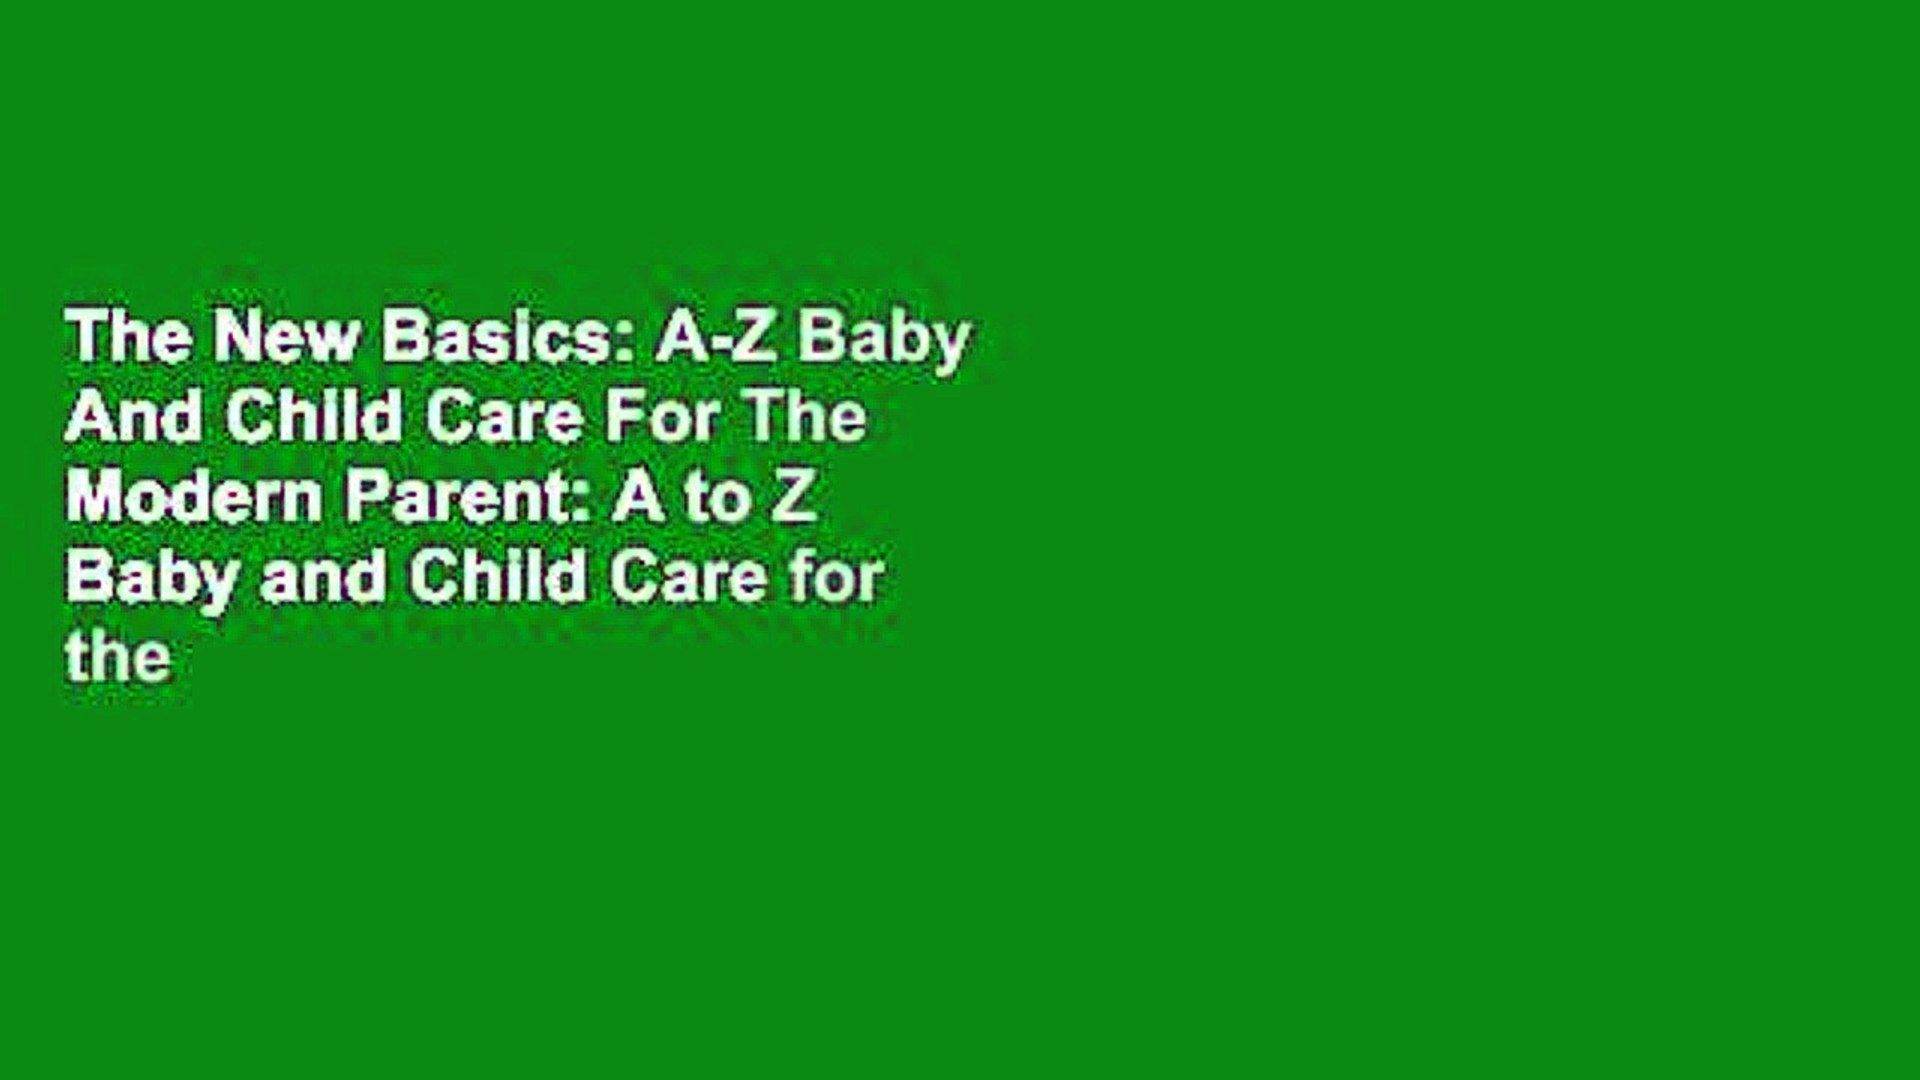 The New Basics: A-Z Baby And Child Care For The Modern Parent: A to Z Baby and Child Care for the